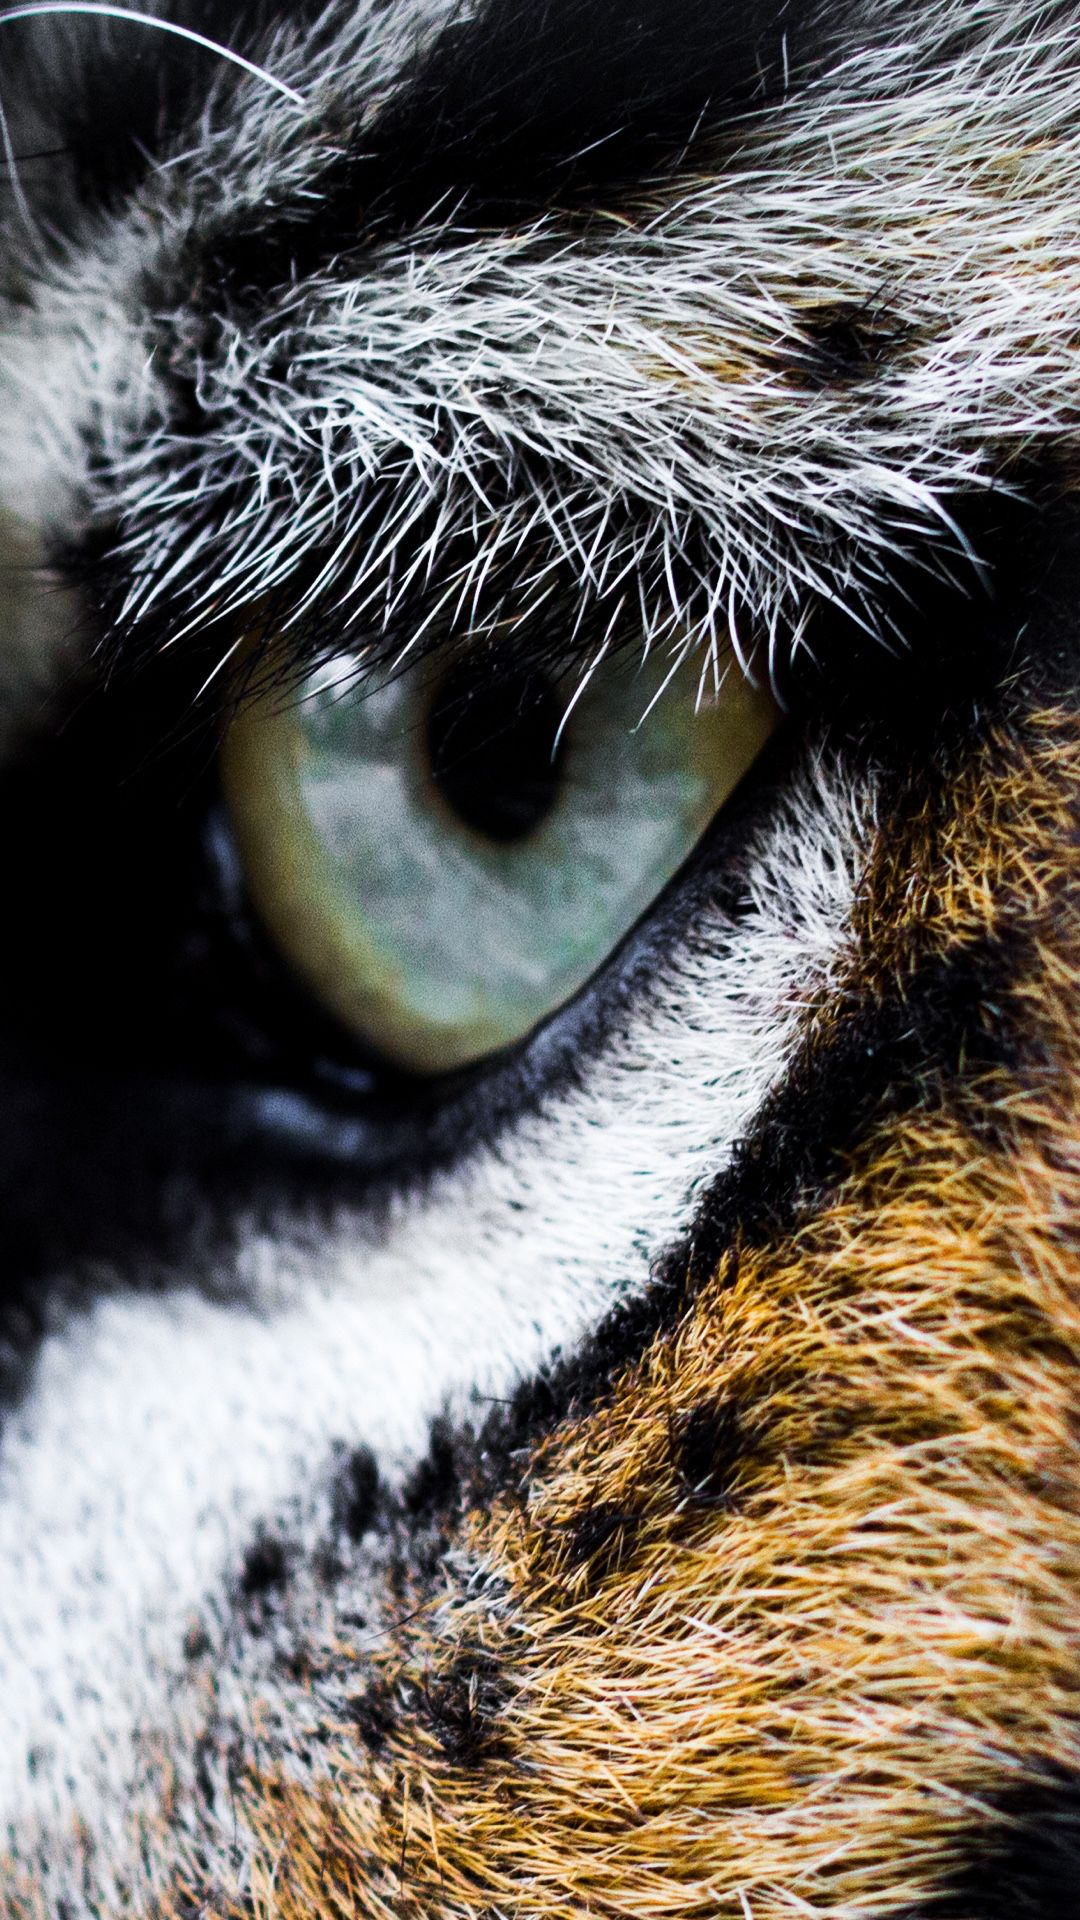 Tigers Eye Will Look Amazing On Your Iphone Animal Wallpaper Wild Animal Wallpaper Tiger Images